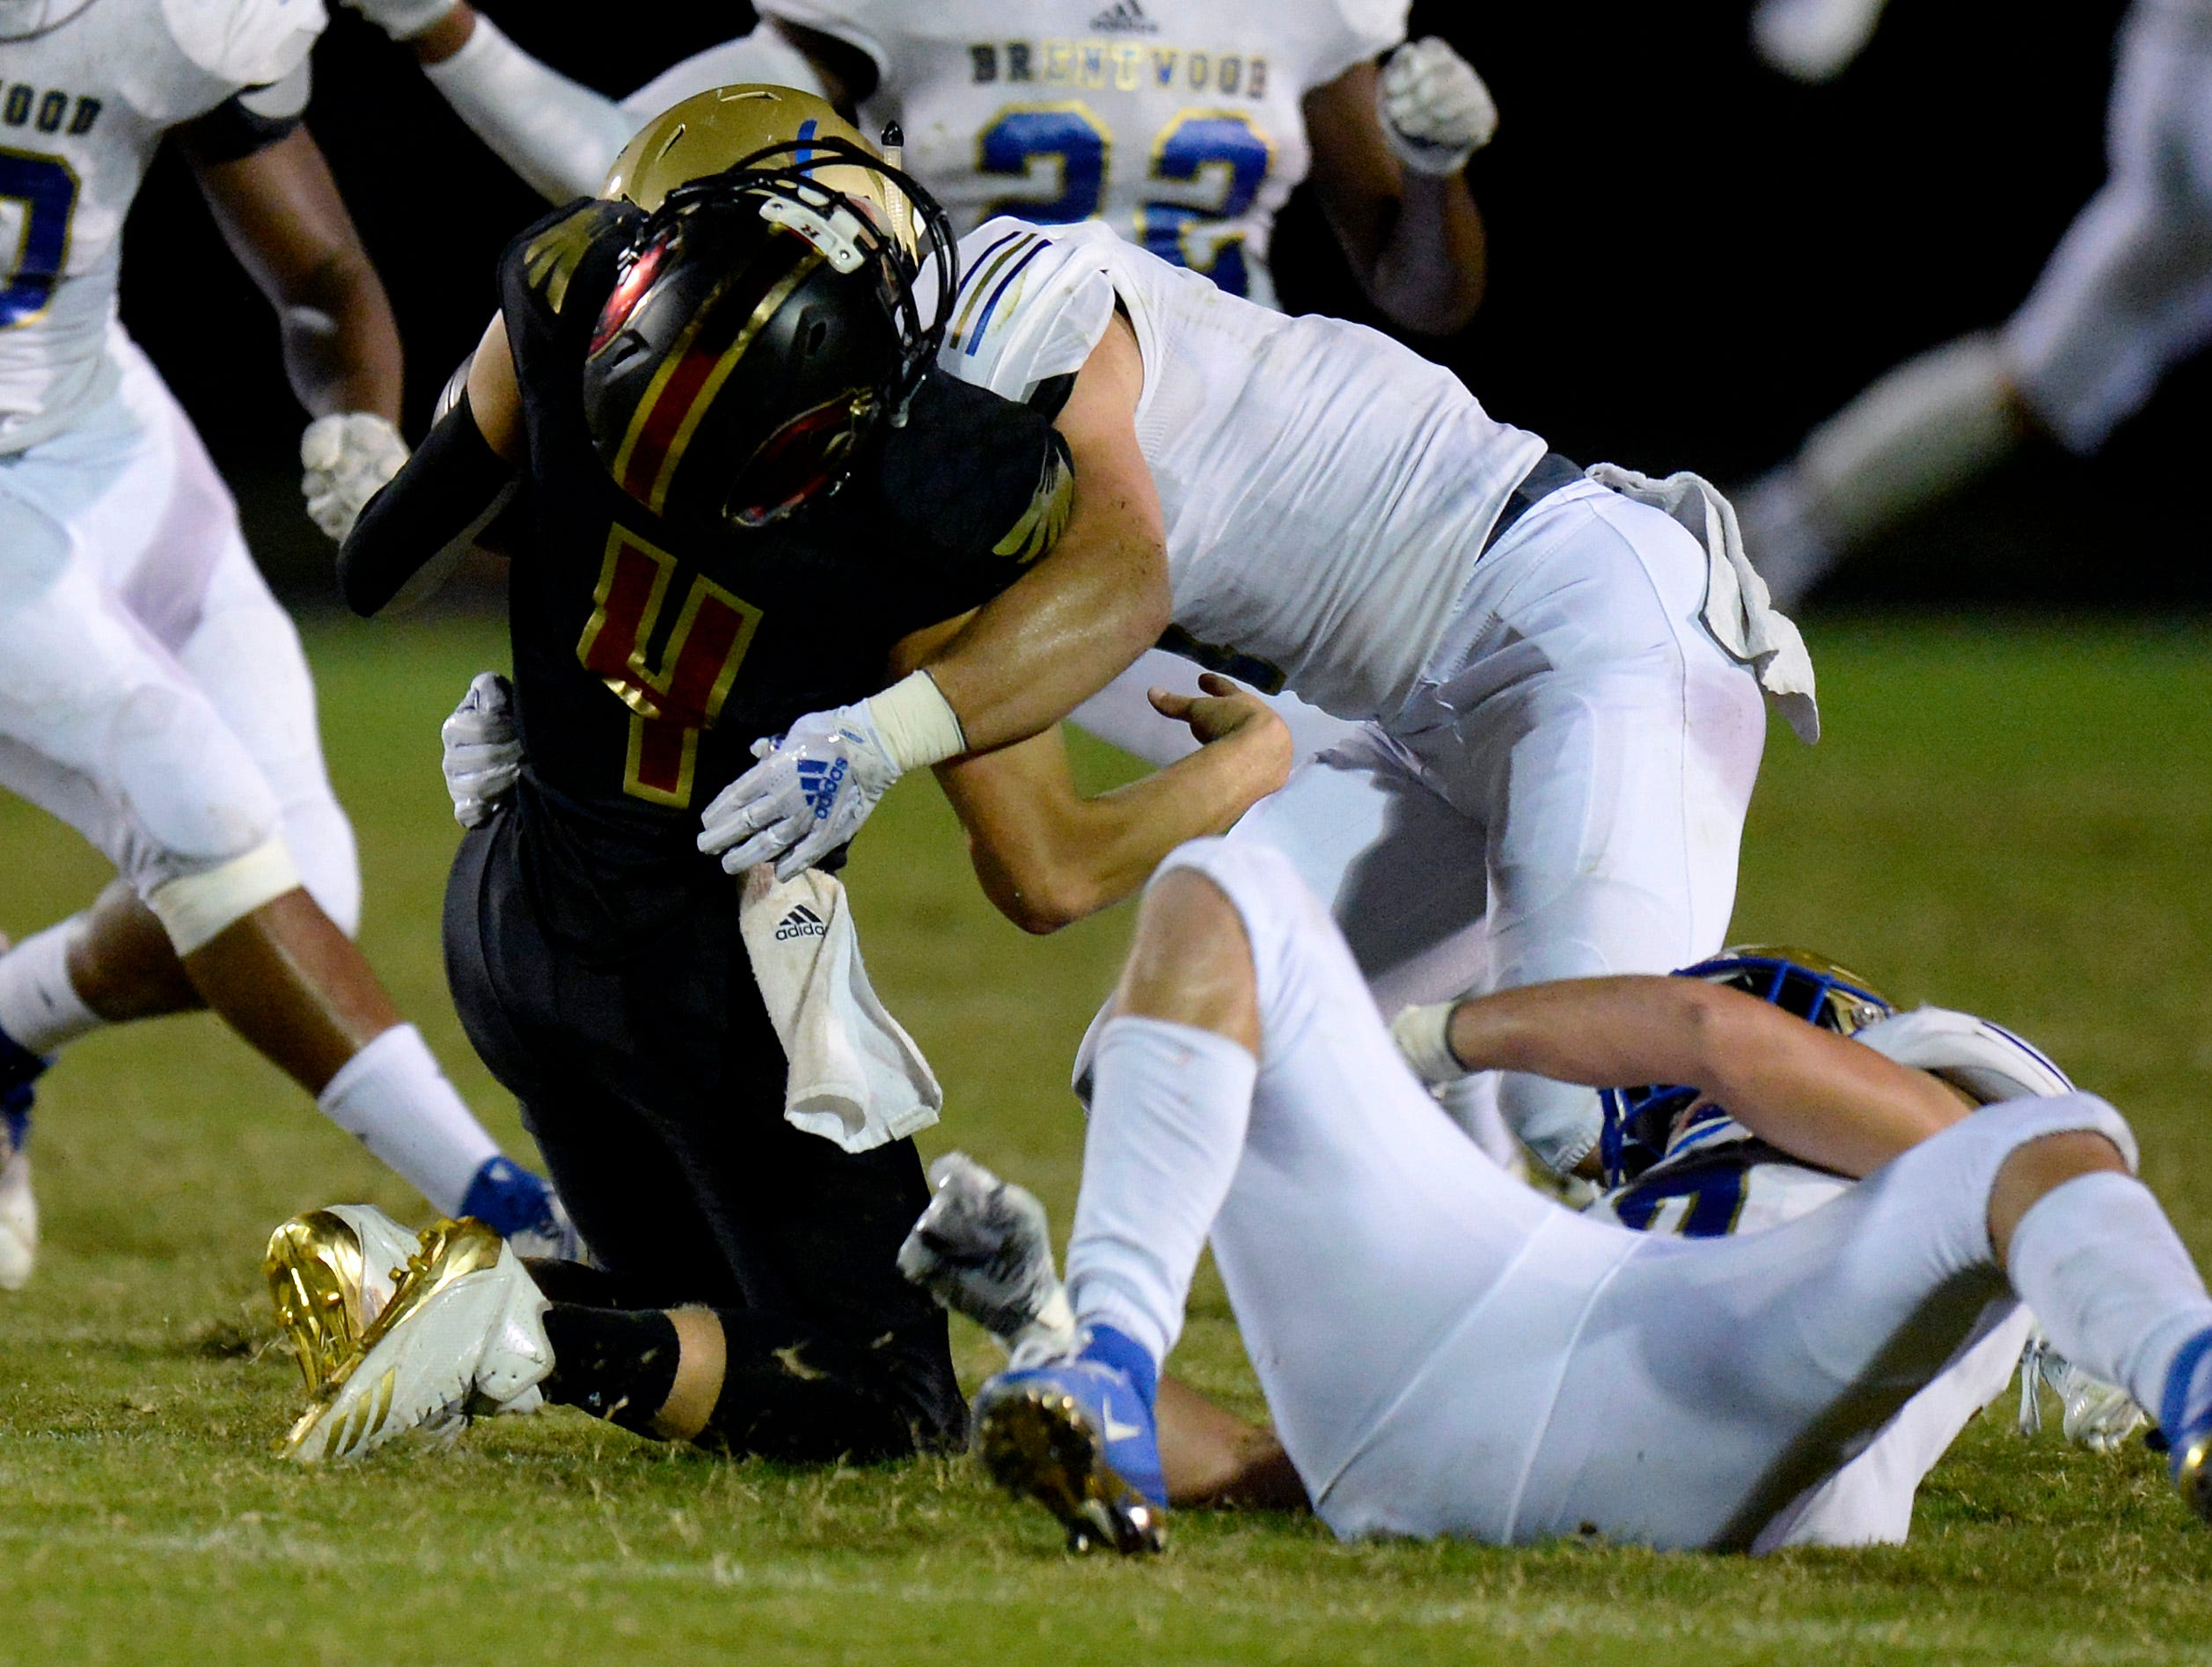 Ravenwood quarterback Brian Garcia (4) is tackled by Brentwood defenders during the first half of an high school football game Friday, September 14, 2018, in Brentwood, Tenn.